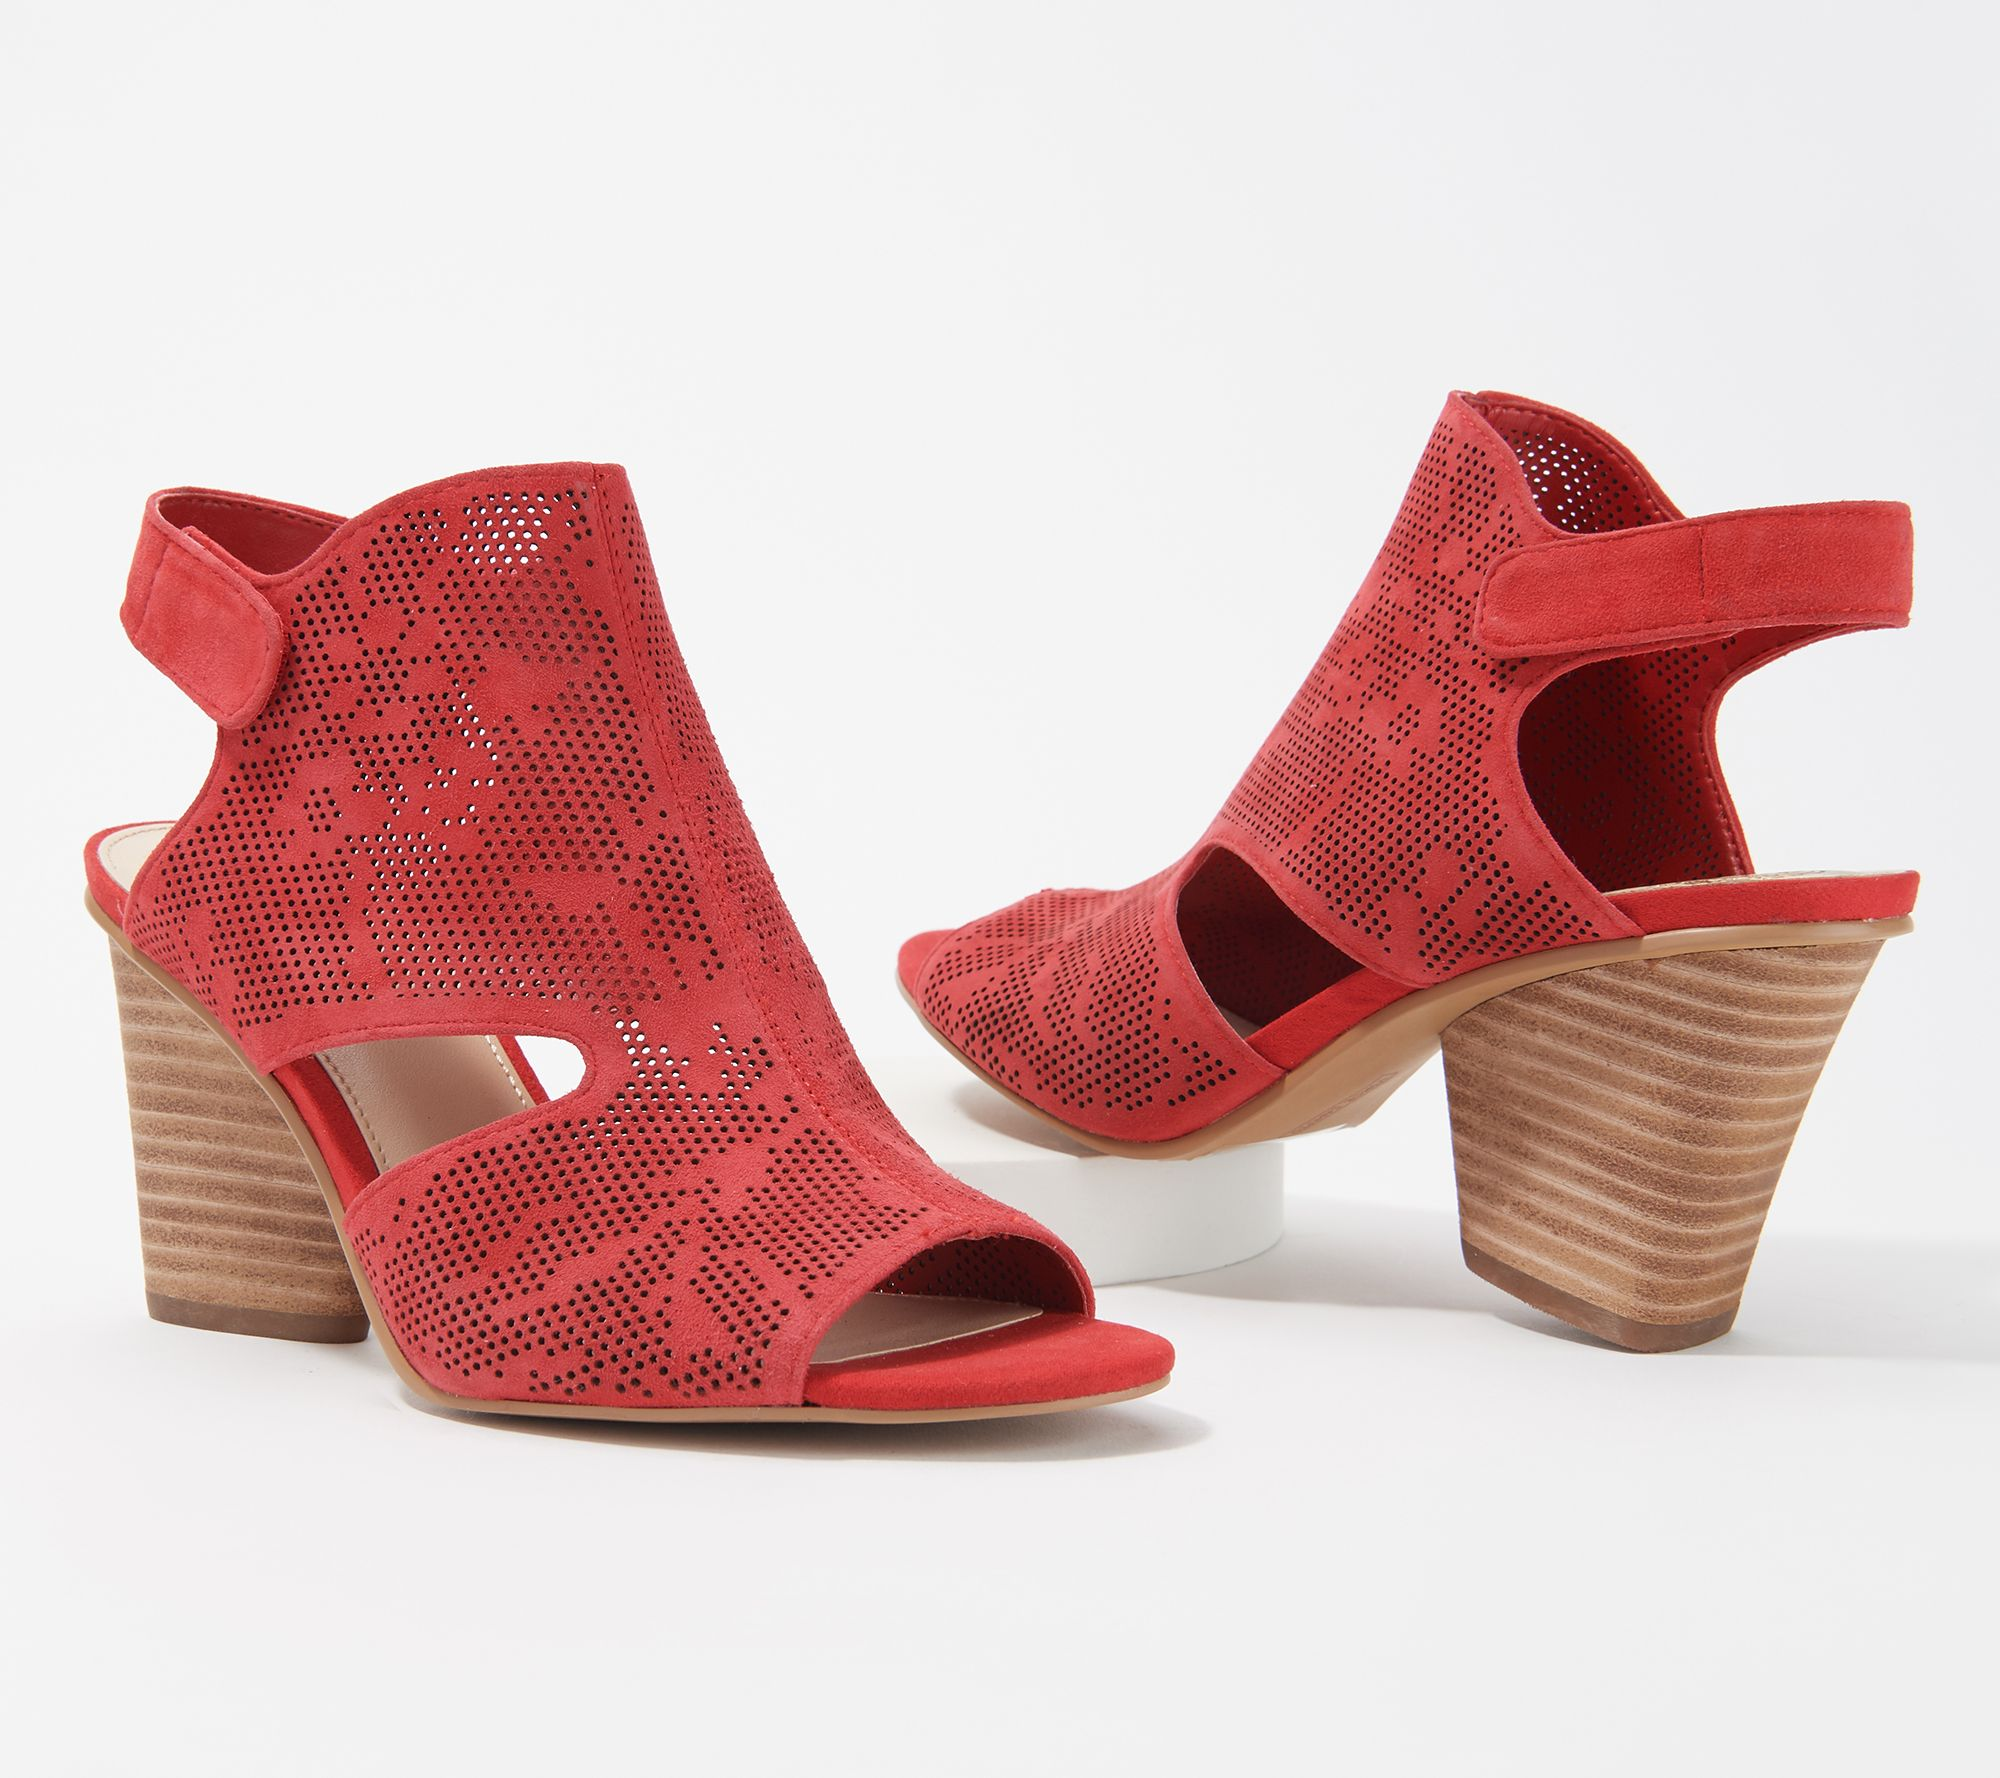 d9de6a7494e Vince Camuto Leather Detailed Heeled Sandals - Dachelle — QVC.com